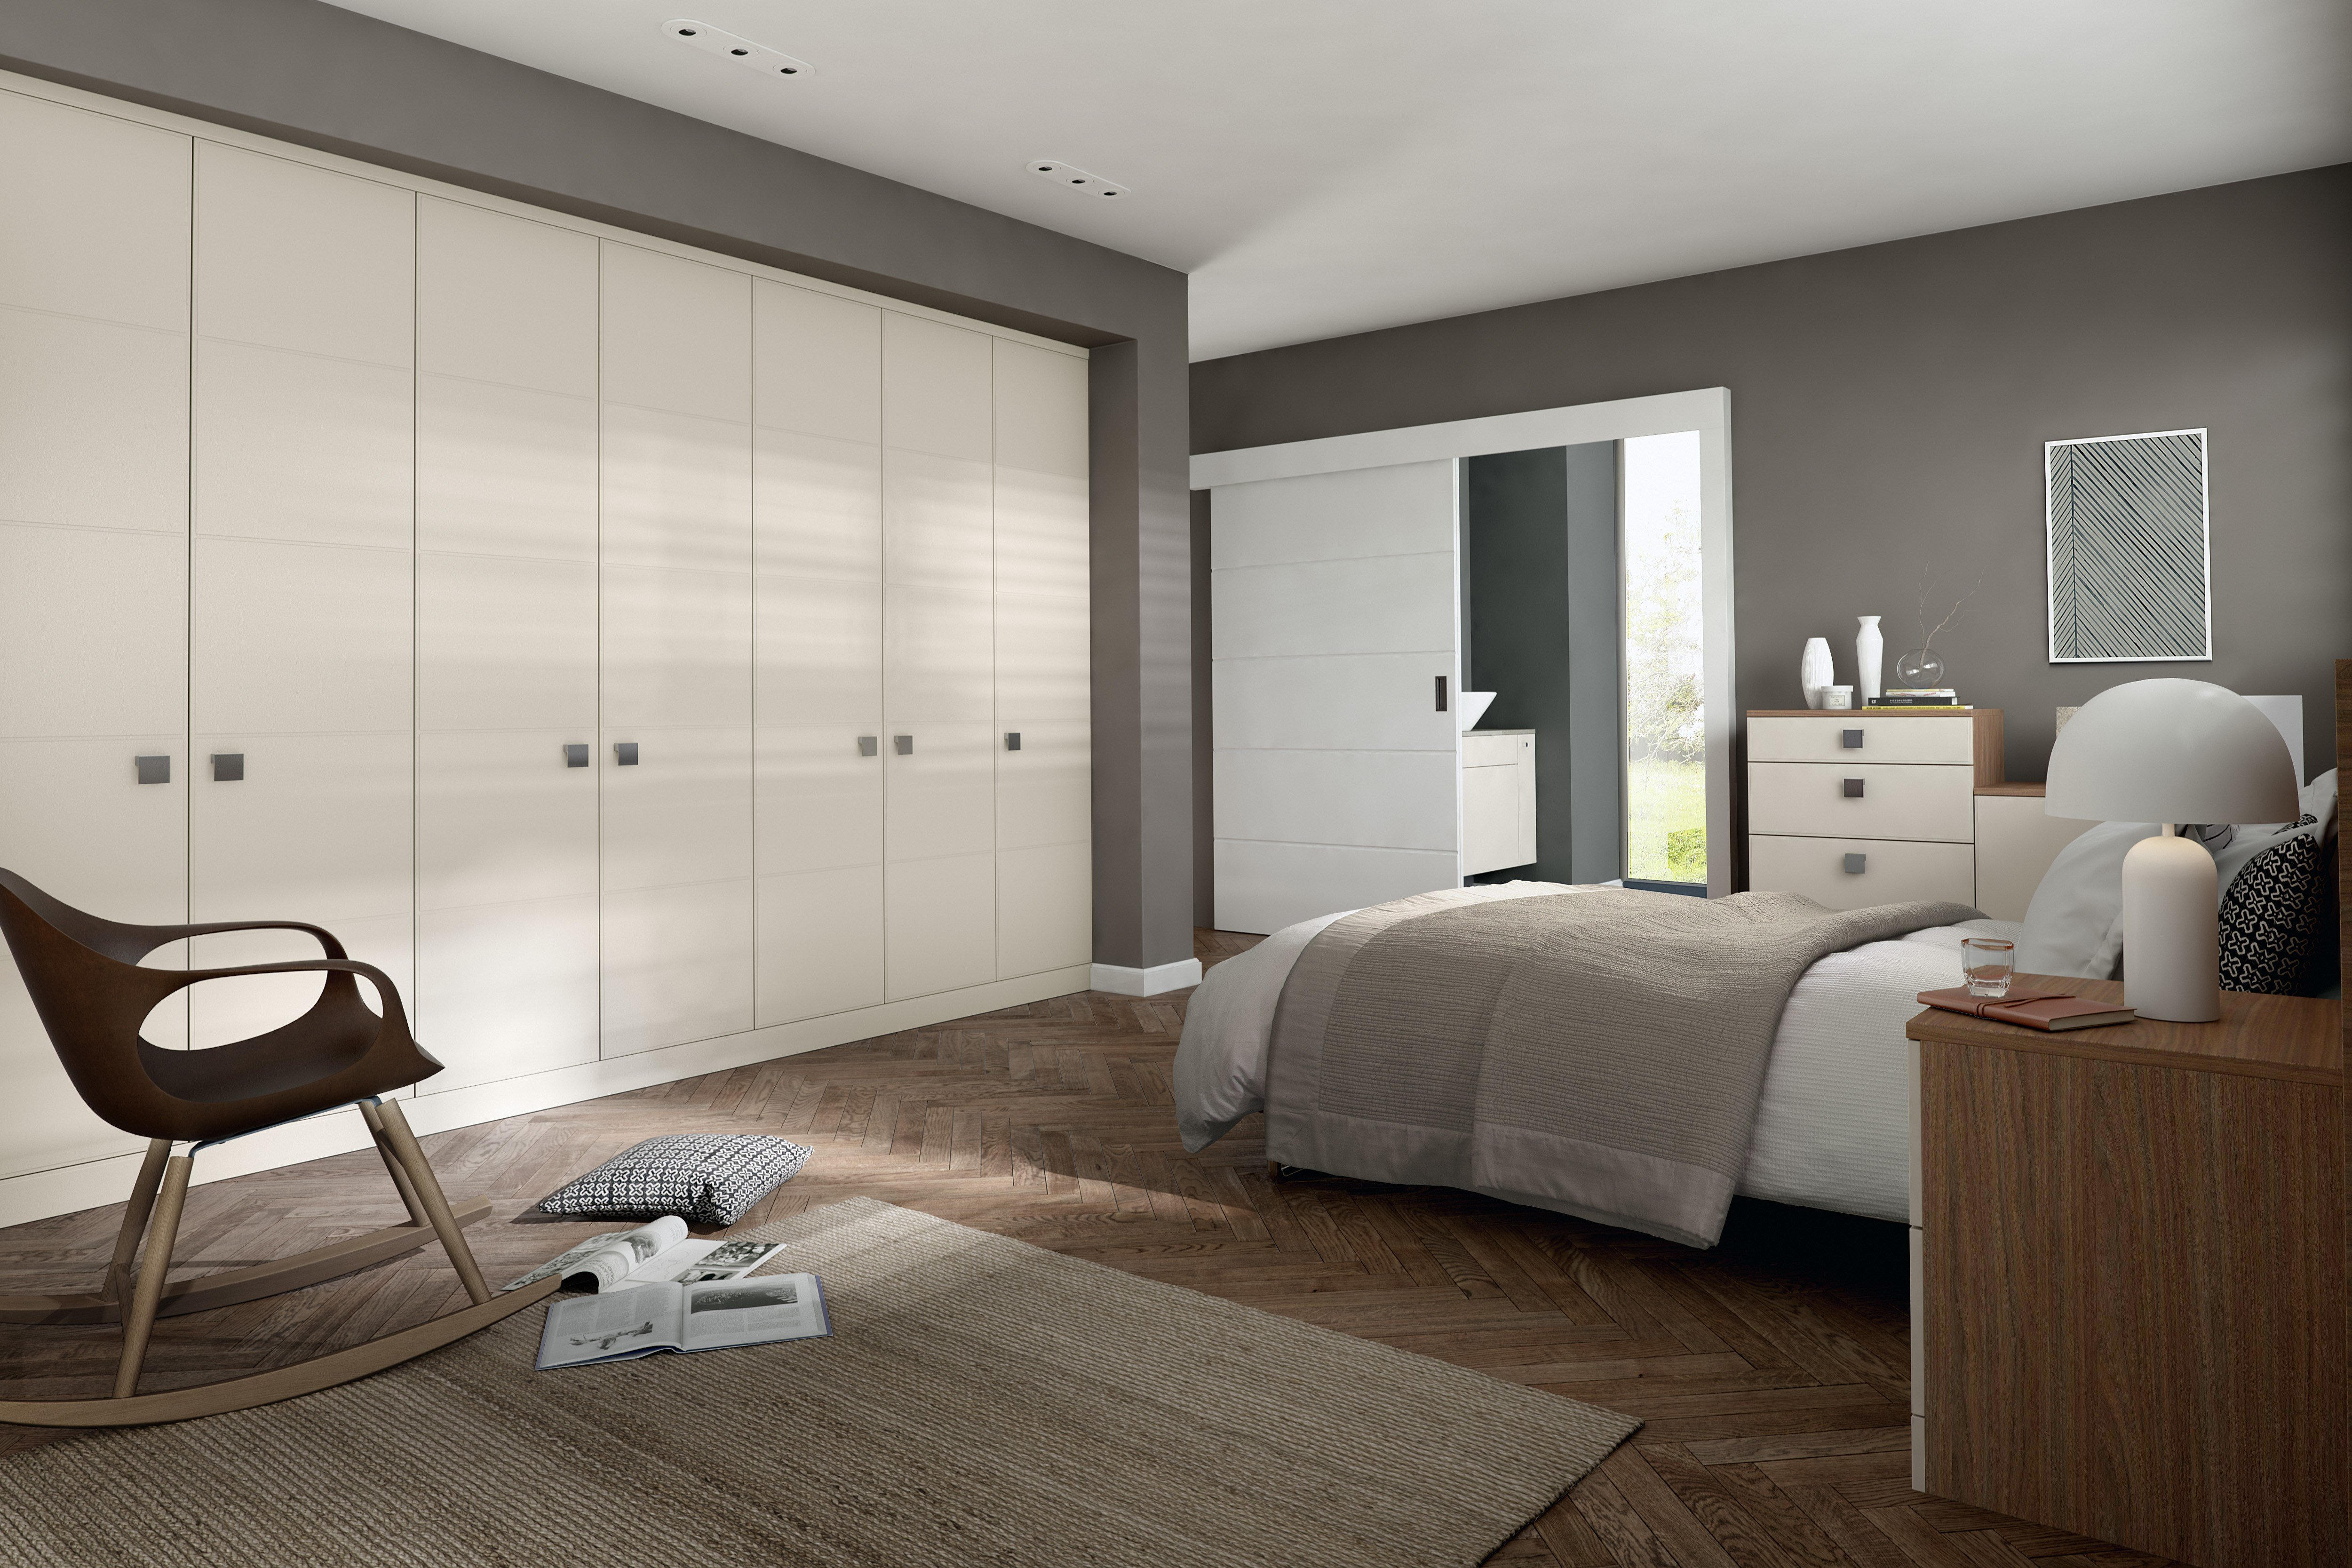 Best Daval Fitted Bedrooms In Stoke On Trent And Newcastle With Pictures